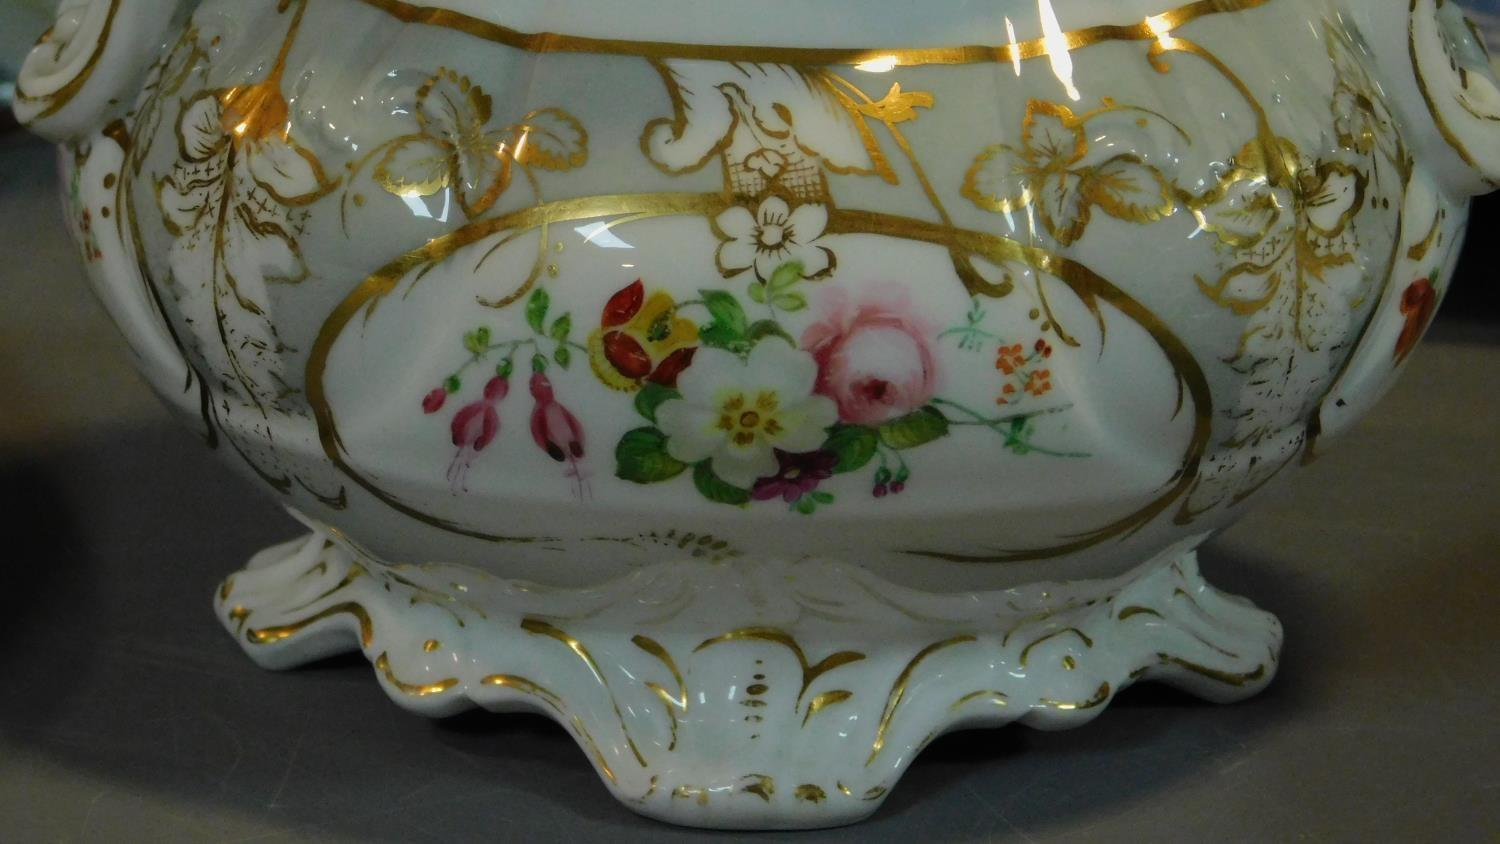 A 19th century Staffordshire ironstone tureen and cover (associated ladle) and various other - Image 16 of 18